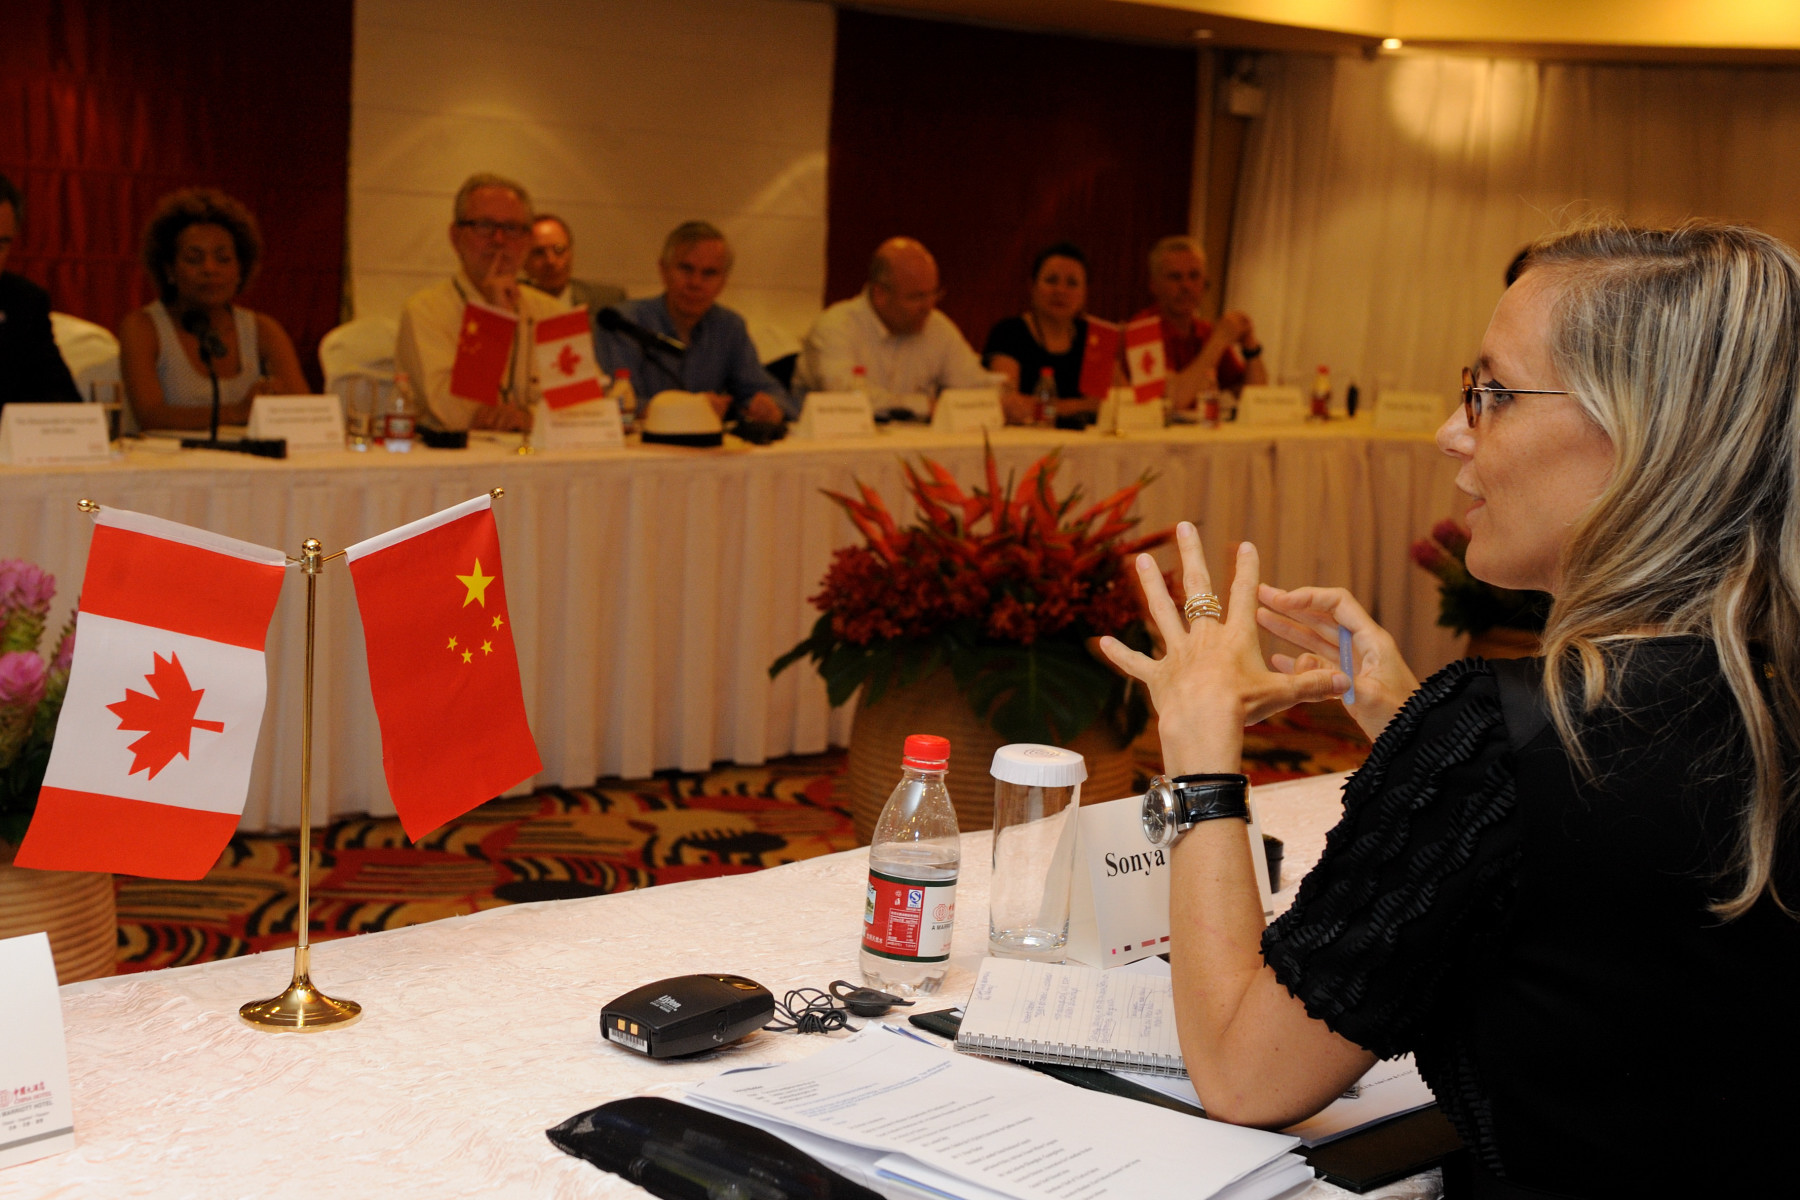 The meeting took place at the China Hotel, in Guangzhou.